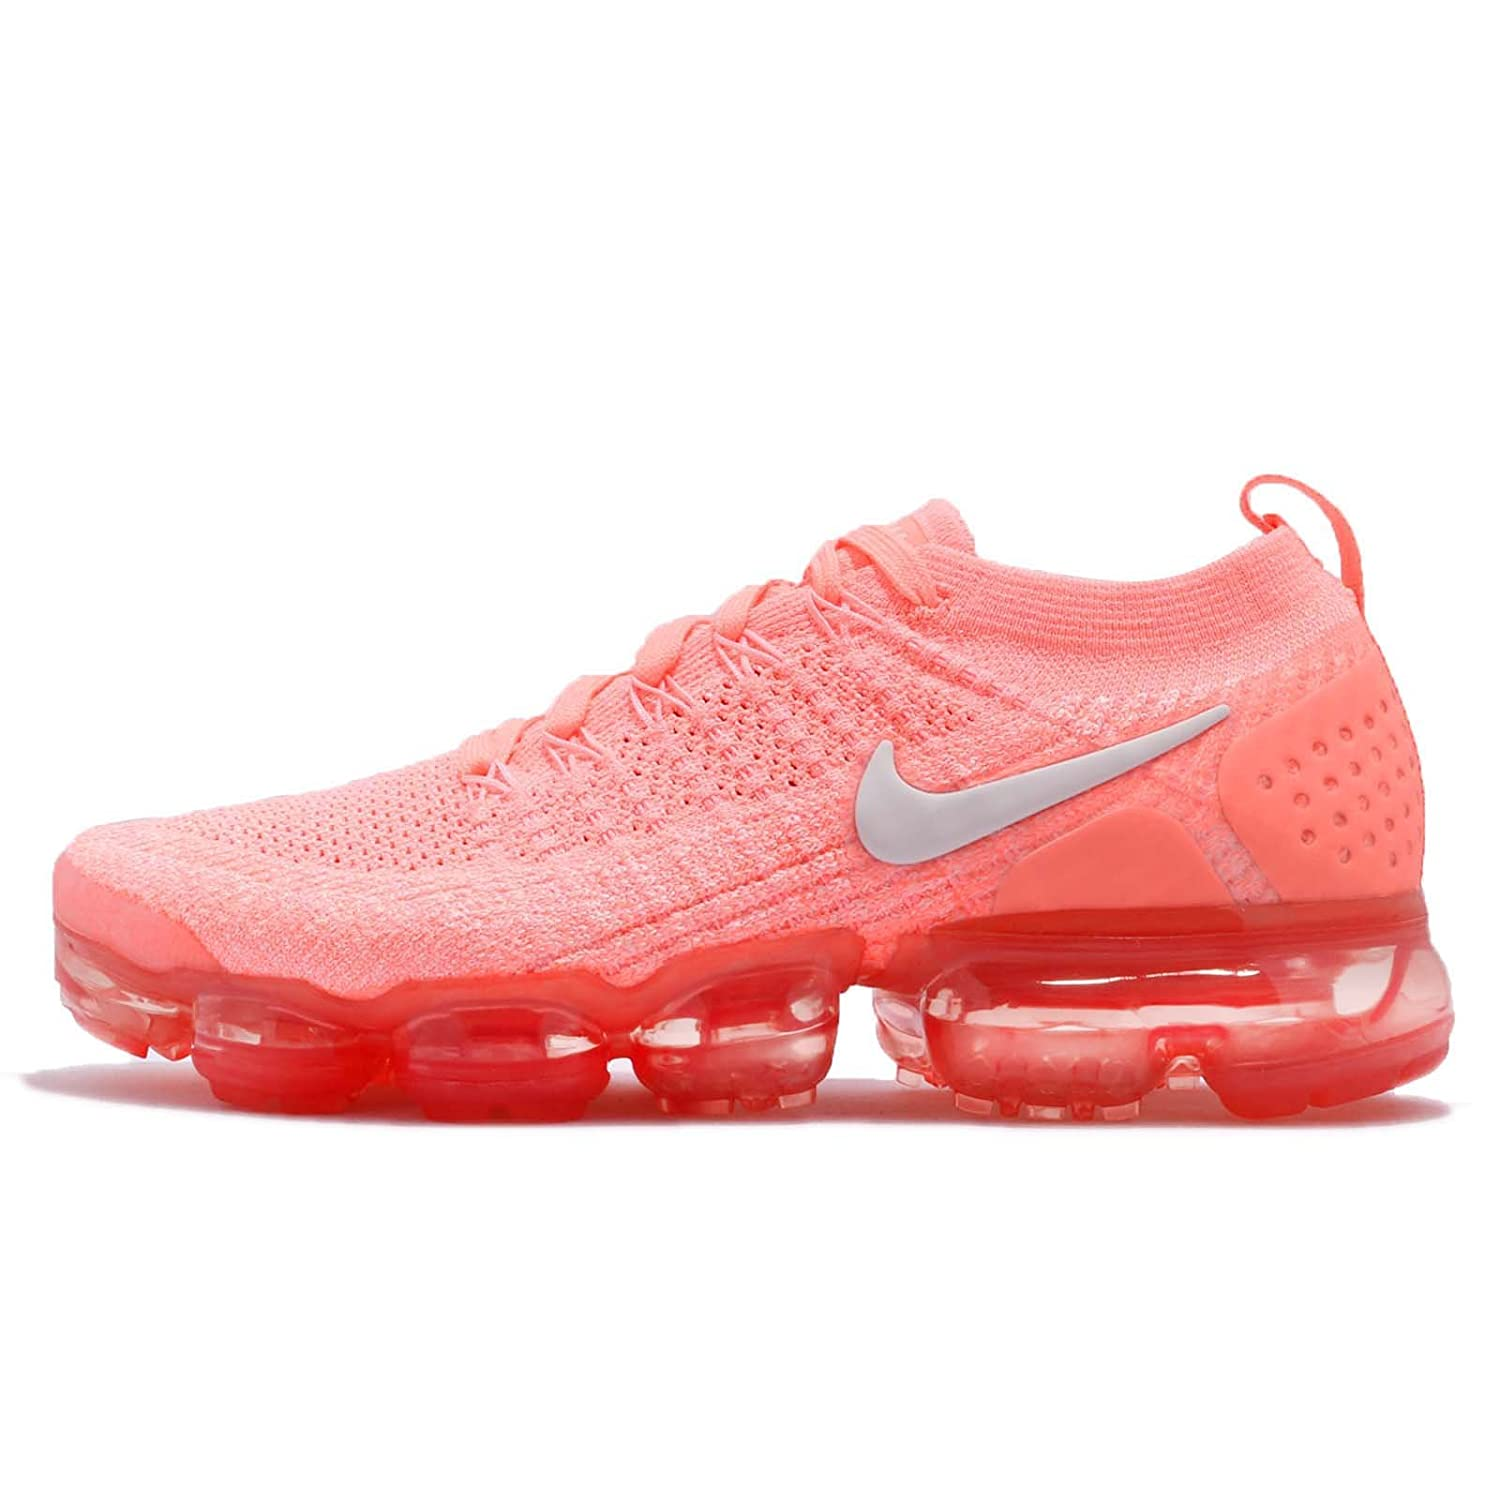 sports shoes 638ad 5e71e NIKE Women's W AIR Vapormax Flyknit 2, Crimson Pulse/SAIL, 9 US